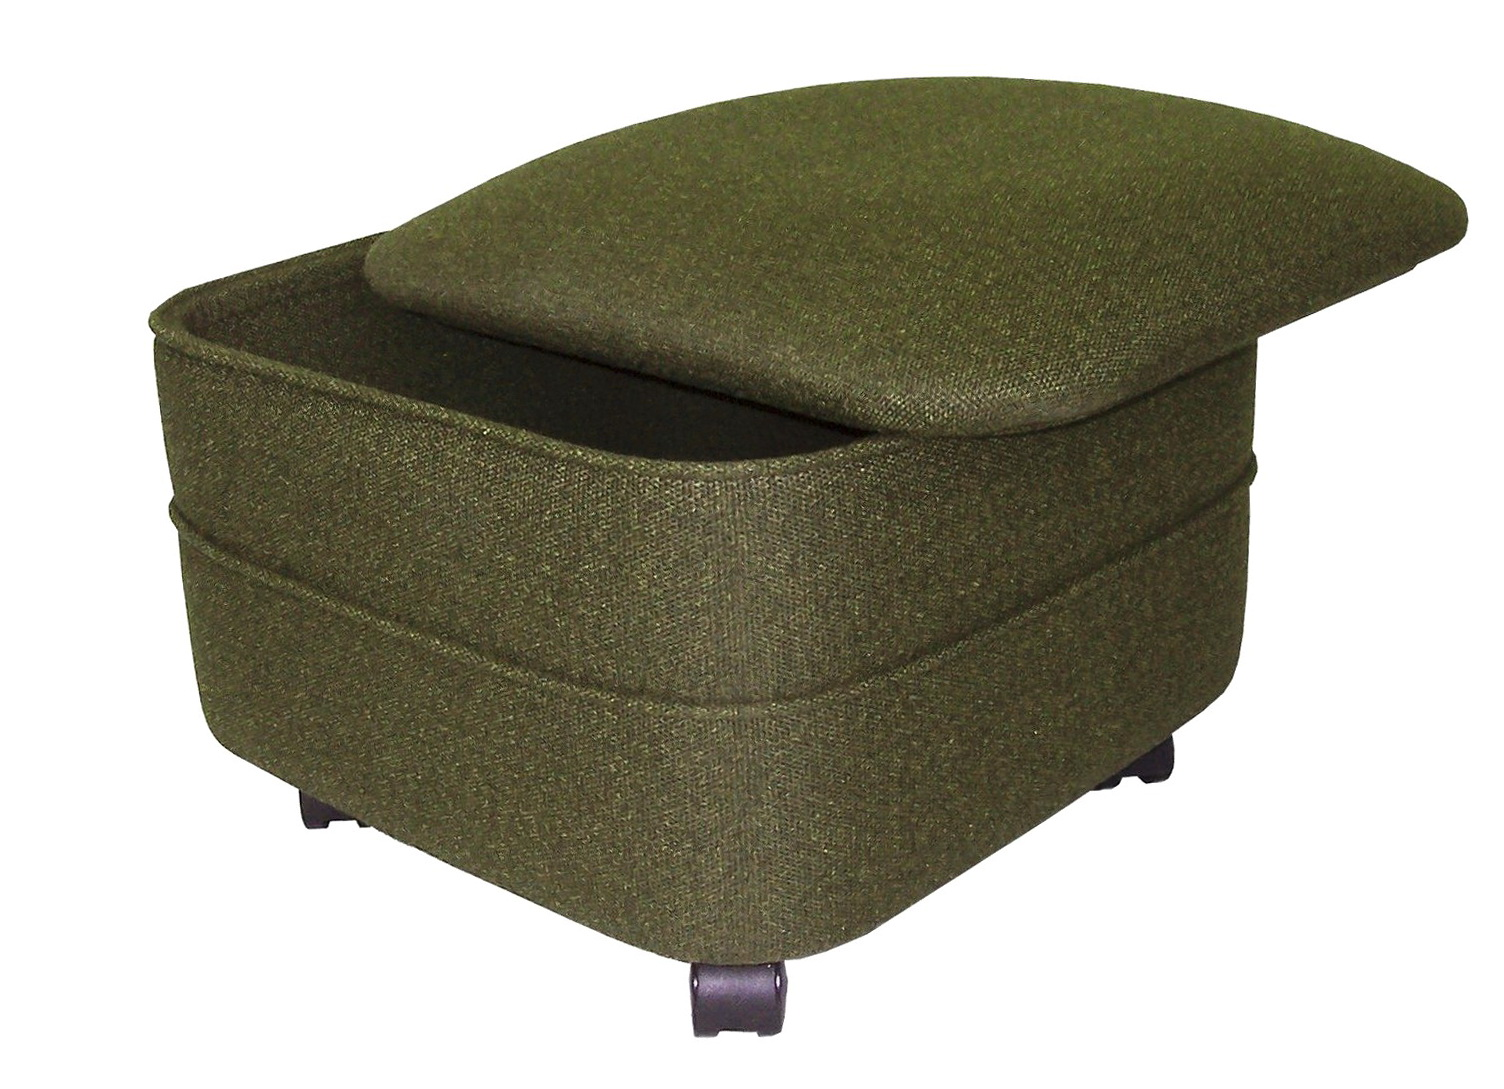 Fabric storage ottoman square home design ideas for Storage ottomans fabric